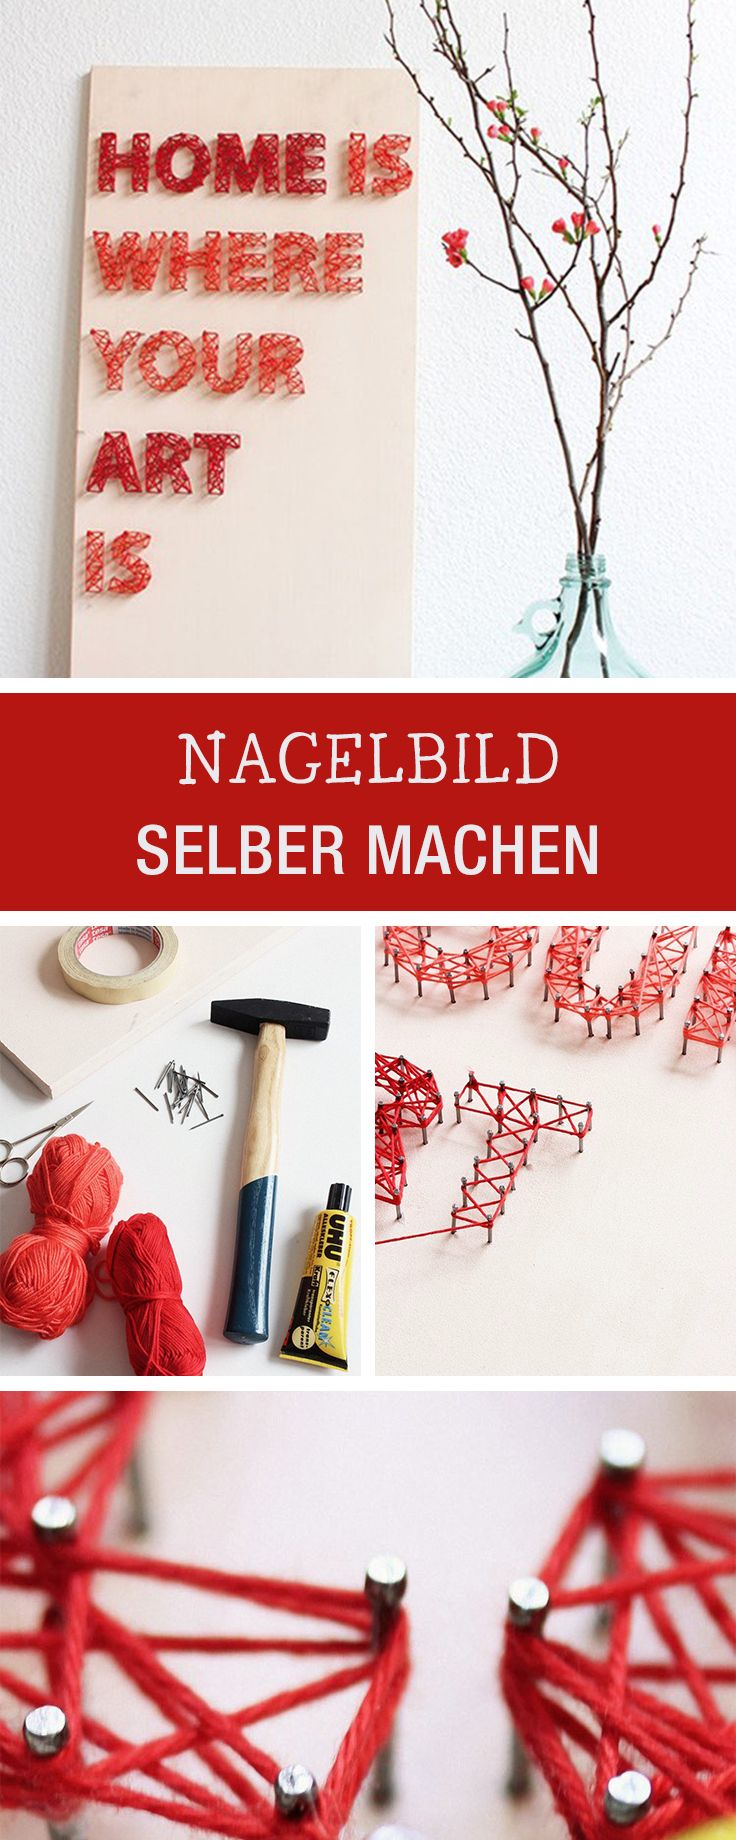 DIY für kreative Wohndeko: Nagelbild selbermachen / tutorial for a handmade nail picture, crafting with yarn via DaWanda.com